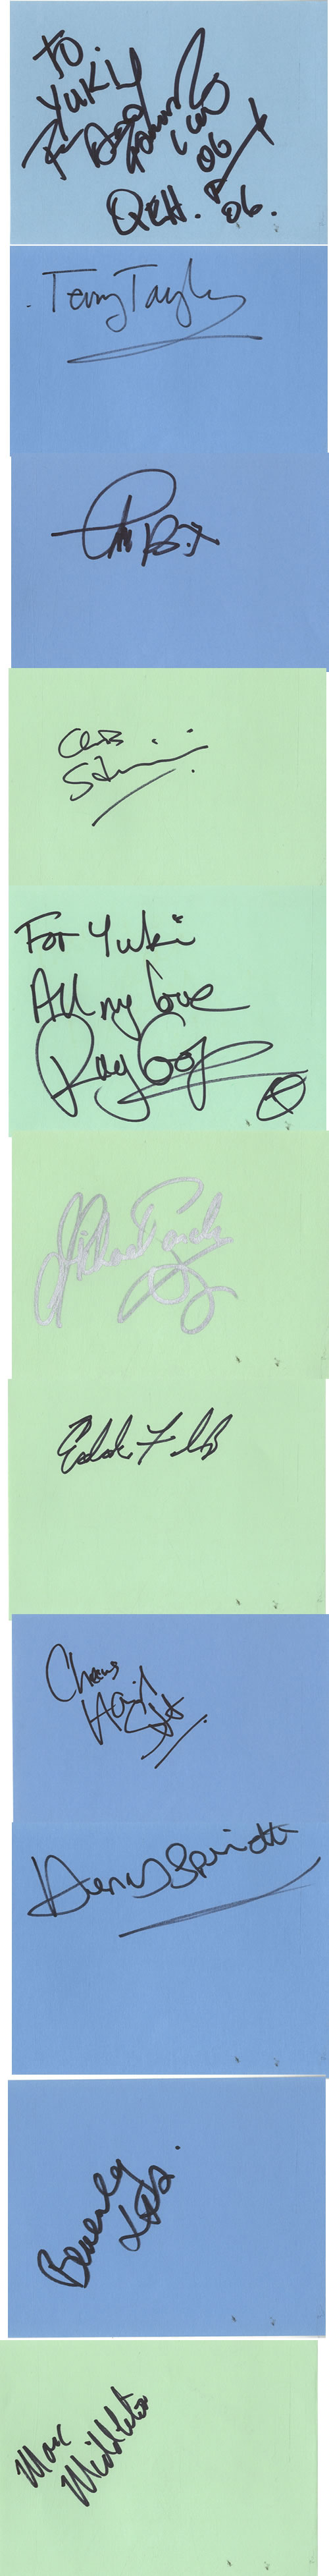 Bill Wyman Pages From Autograph Books memorabilia UK WYMMMPA603451